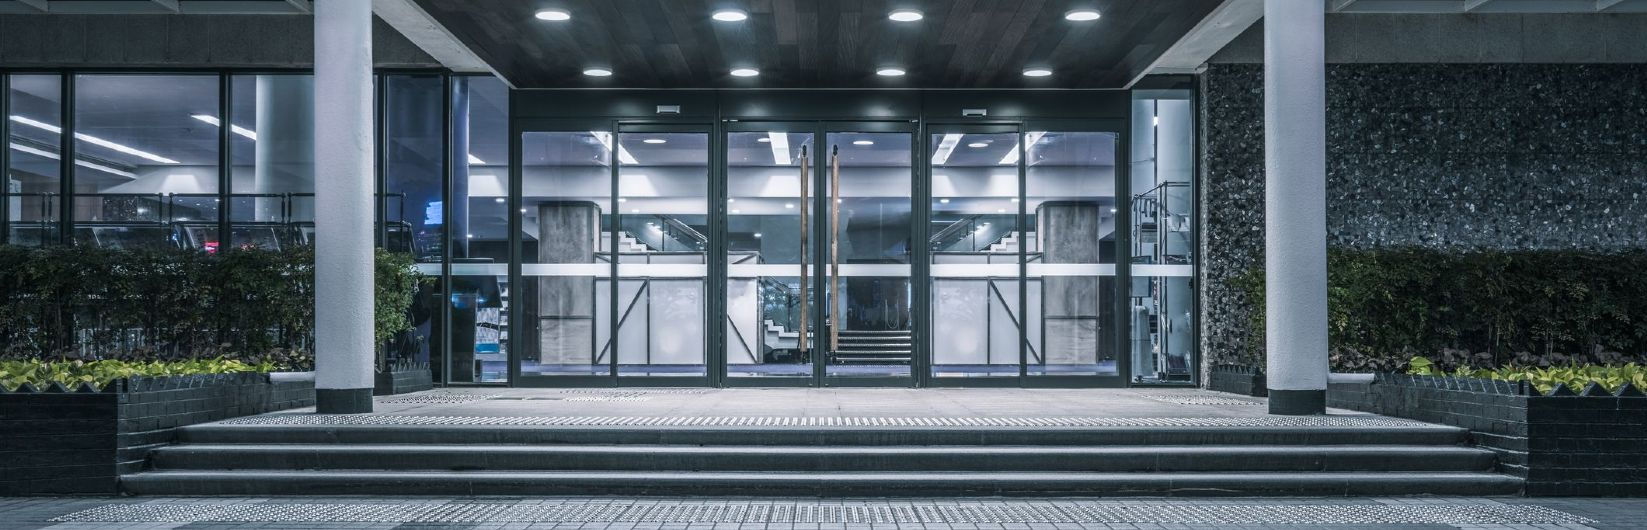 Disposing of Commercial Property